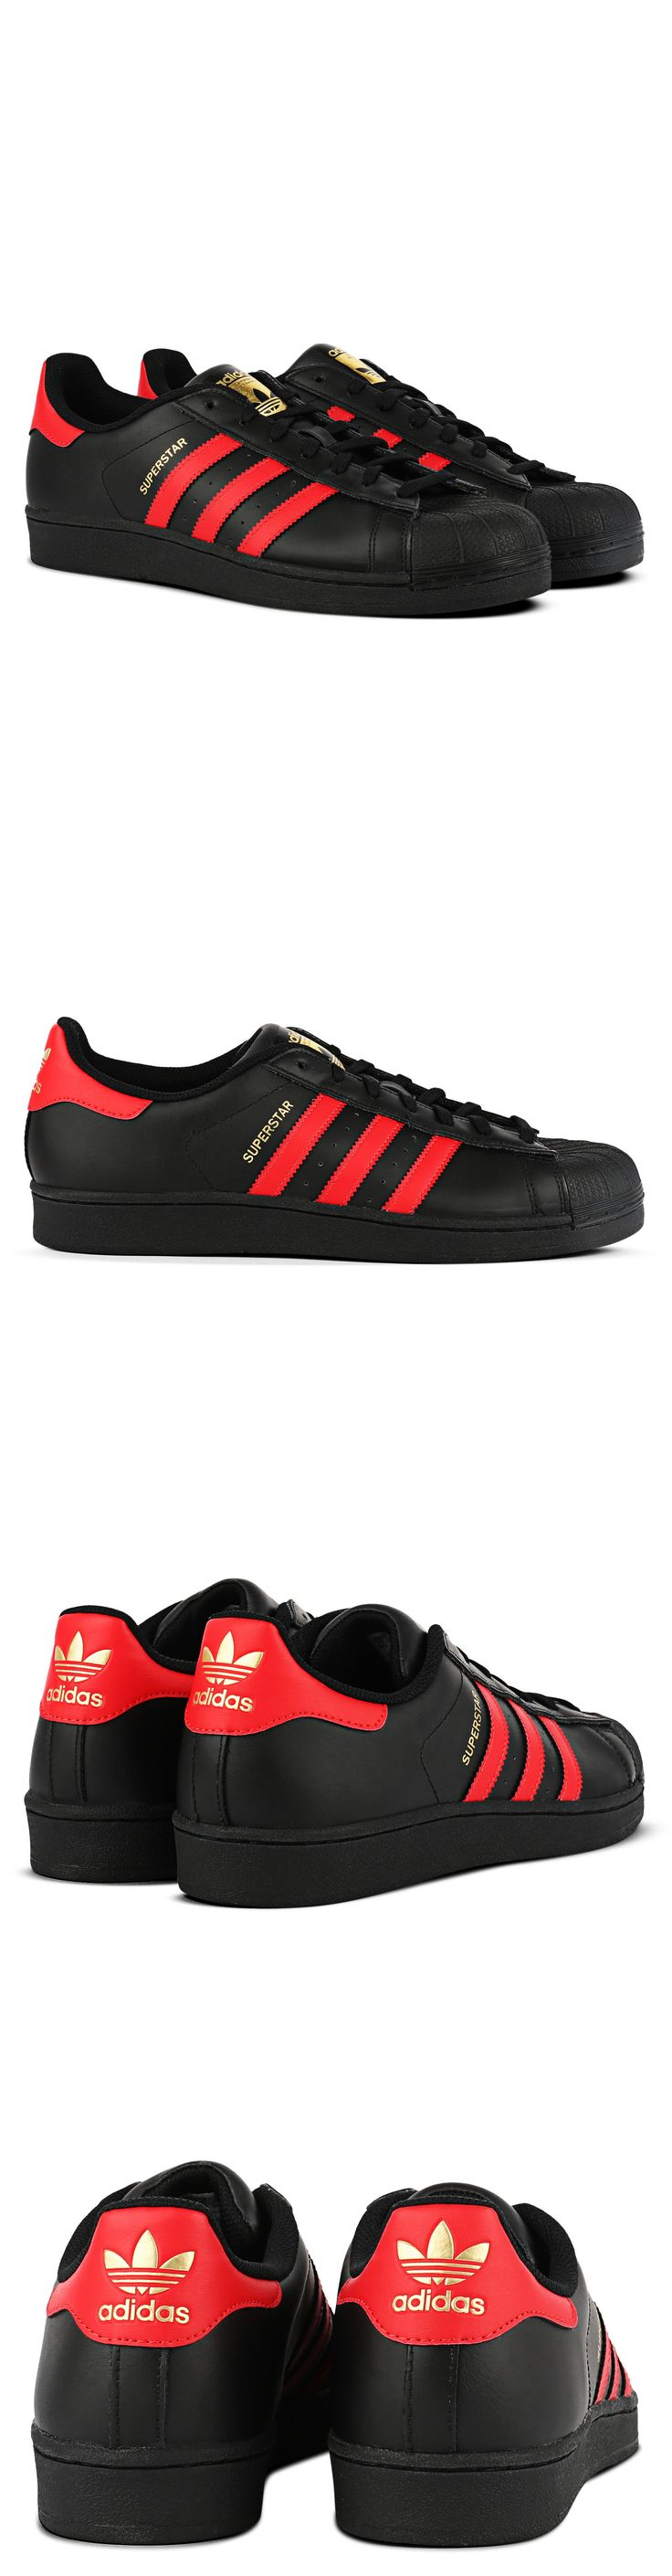 Men Shoes: Adidas Superstar Shoes Mens Sneakers Black/Red Adidas Originals S80694 New BUY IT NOW ONLY: $72.0